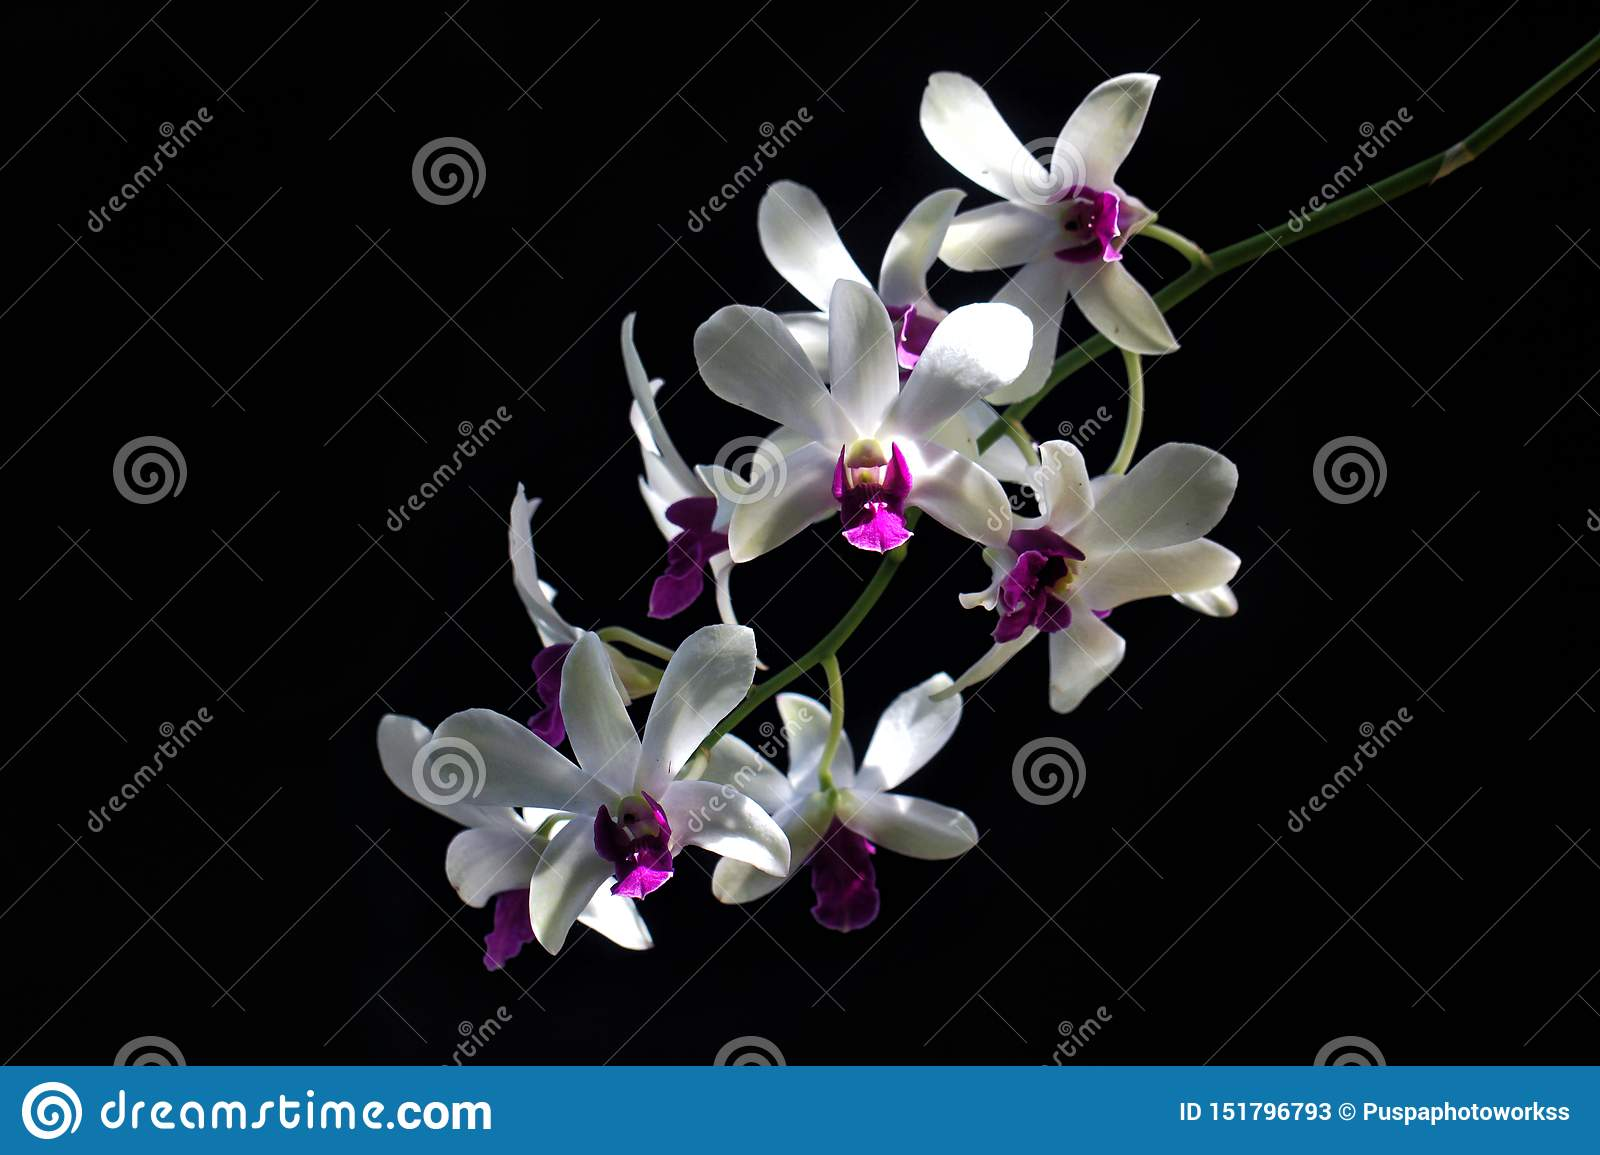 Detail of White Purple Orchids Dendrodium with Black Background and Natural Light on Flower Petals.